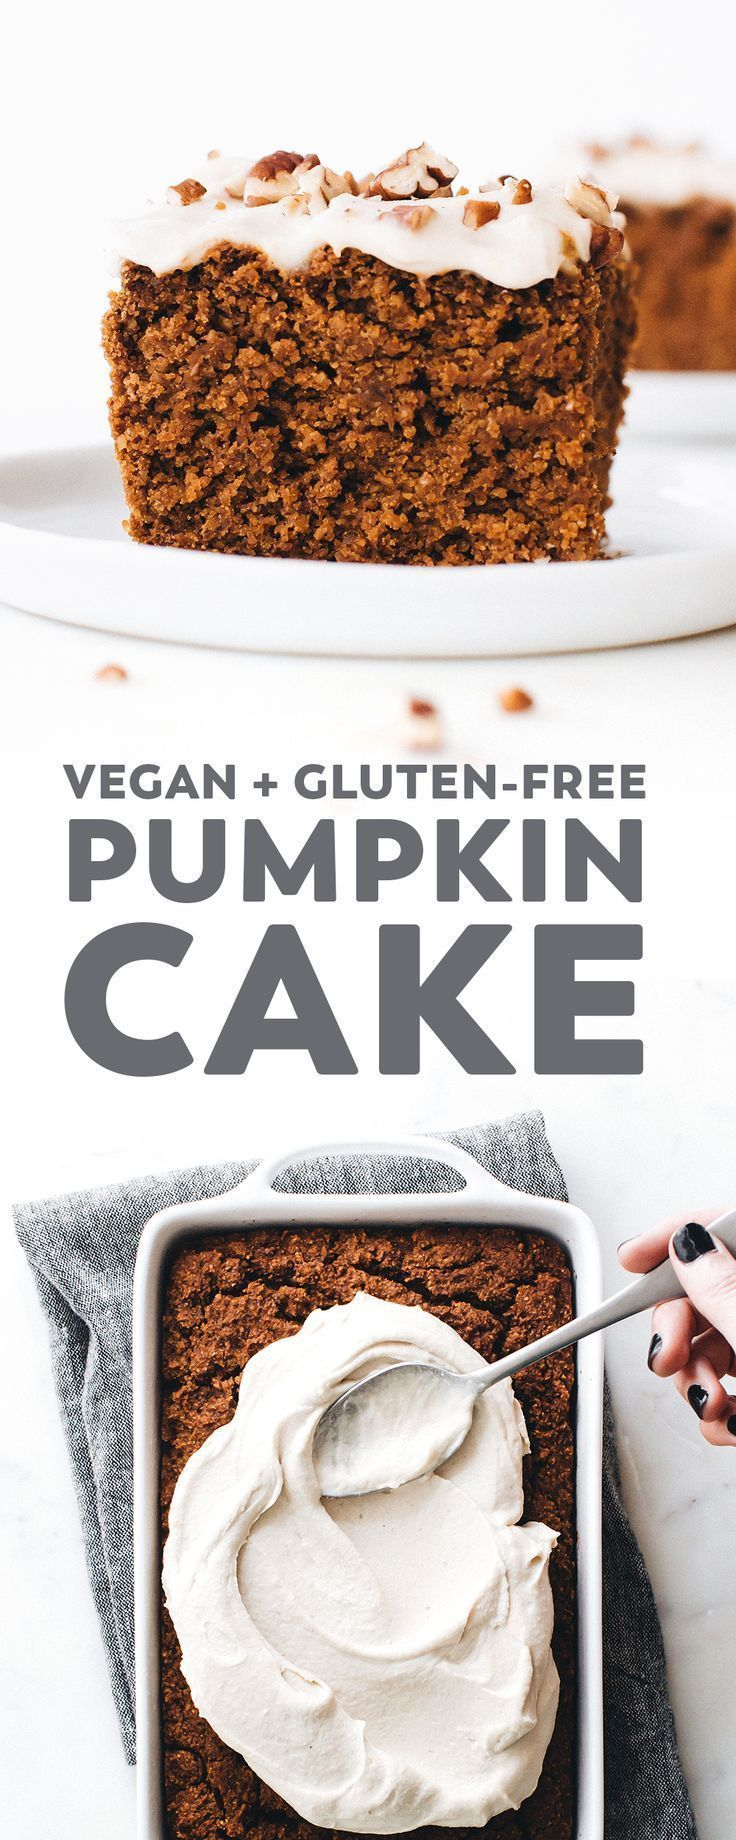 Pumpkin Cake The Vegan Pumpkin Cake of your fall baking dreams! Fluffy, moist, deliciously spiced, and easy to make. You'd never guess it's gluten and oil free too!The Vegan Pumpkin Cake of your fall baking dreams! Fluffy, moist, deliciously spiced, and easy to make. You'd never guess it's gluten and oil free too!